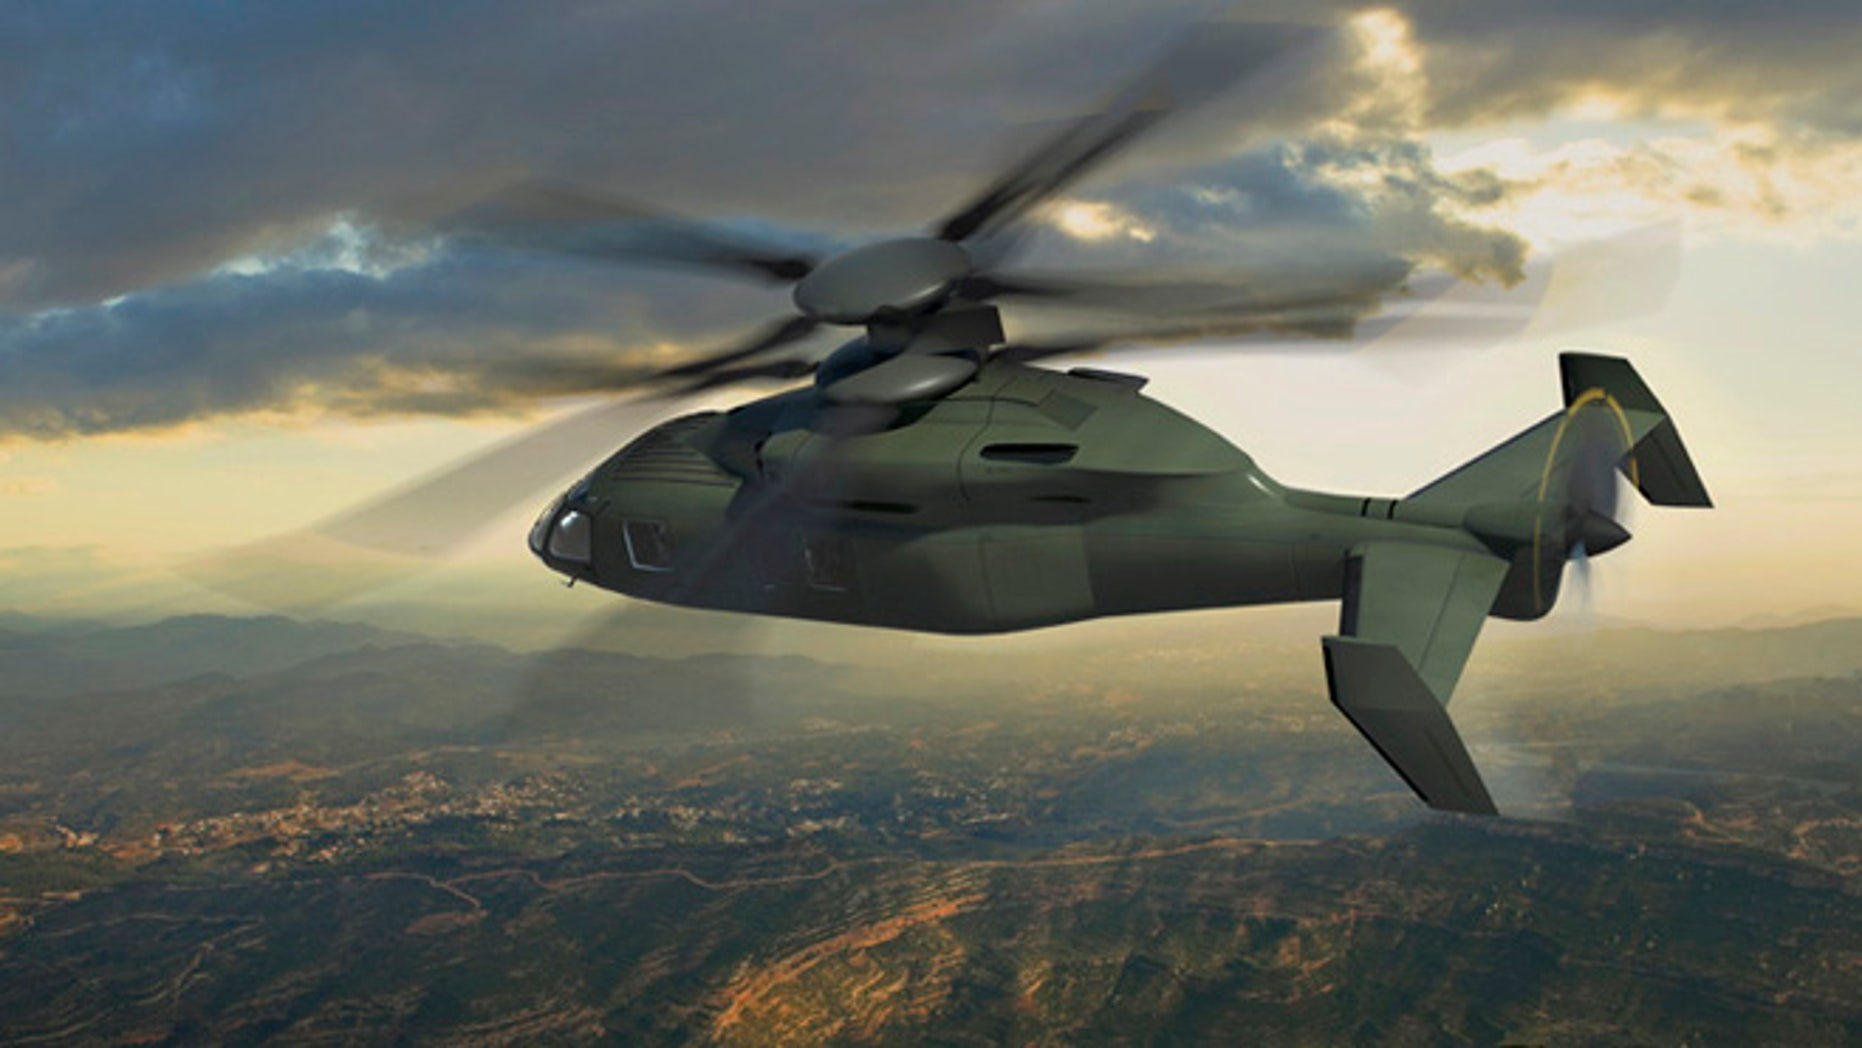 Sikorsky and Boeing announced the name of the team's Joint Multi-Role Technology Demonstrator helicopter Oct. 21: the SB>1 Defiant. The announcement came at the AUSA Annual Meeting and Exposition in Washington, D.C.